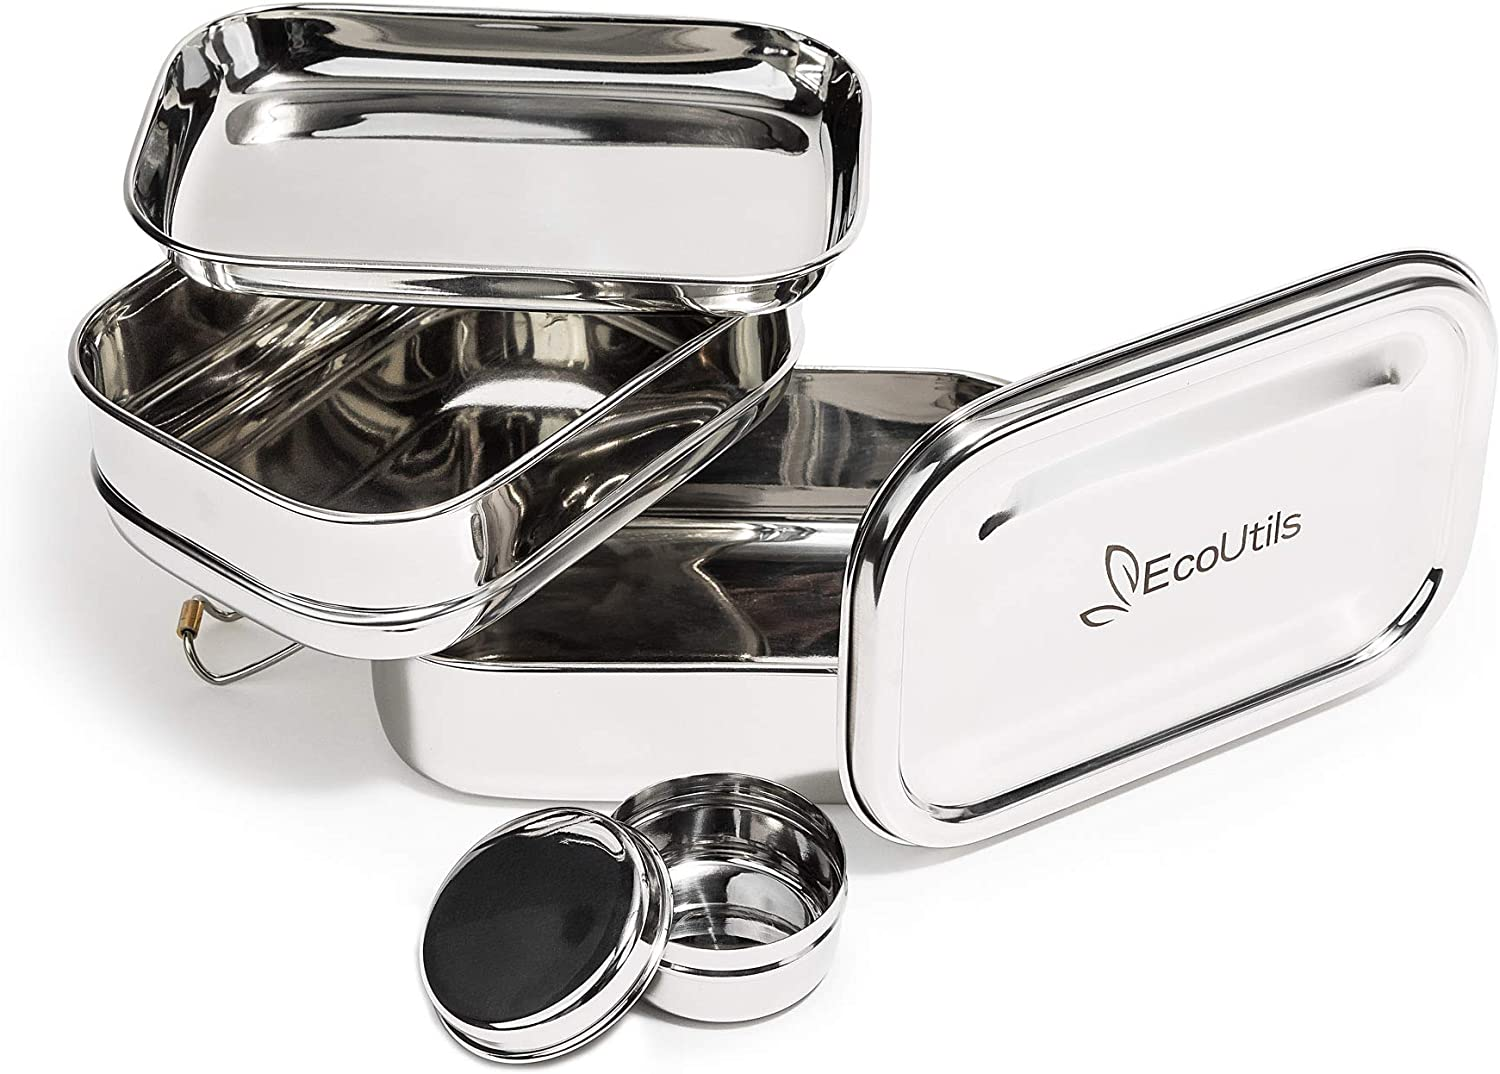 EcoUtils Stainless Steel Bento Lunch Box | FDA Passed | BONUS Nested Leak Resistant Sauce Container|Food grade quality + 3 in 1 Stack Design|For adults,teens and kids|Space Saver|Healthy Meal Storage